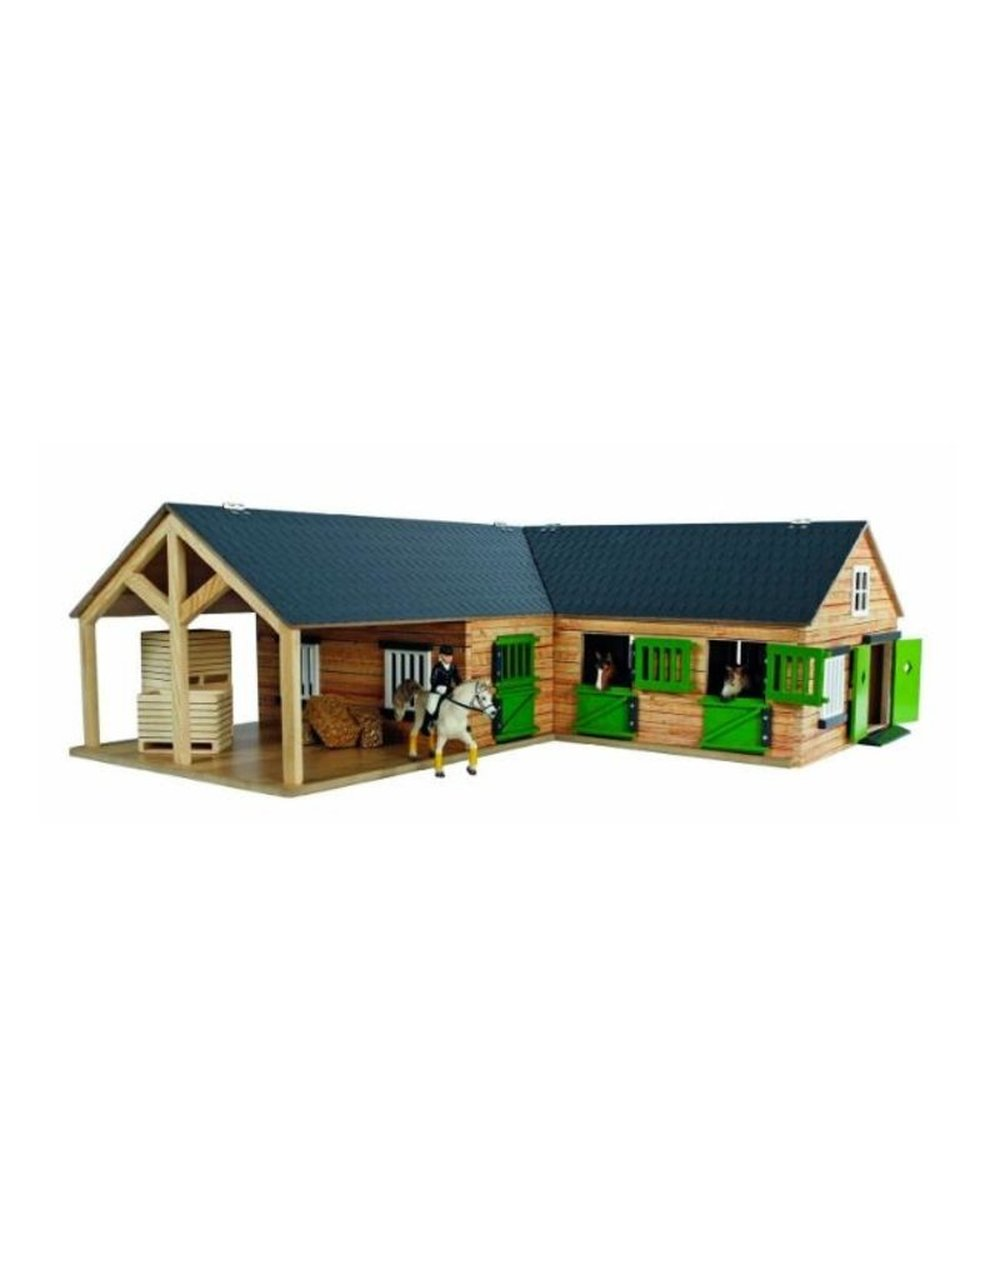 Kids Globe 1:24 scale Horse Stable